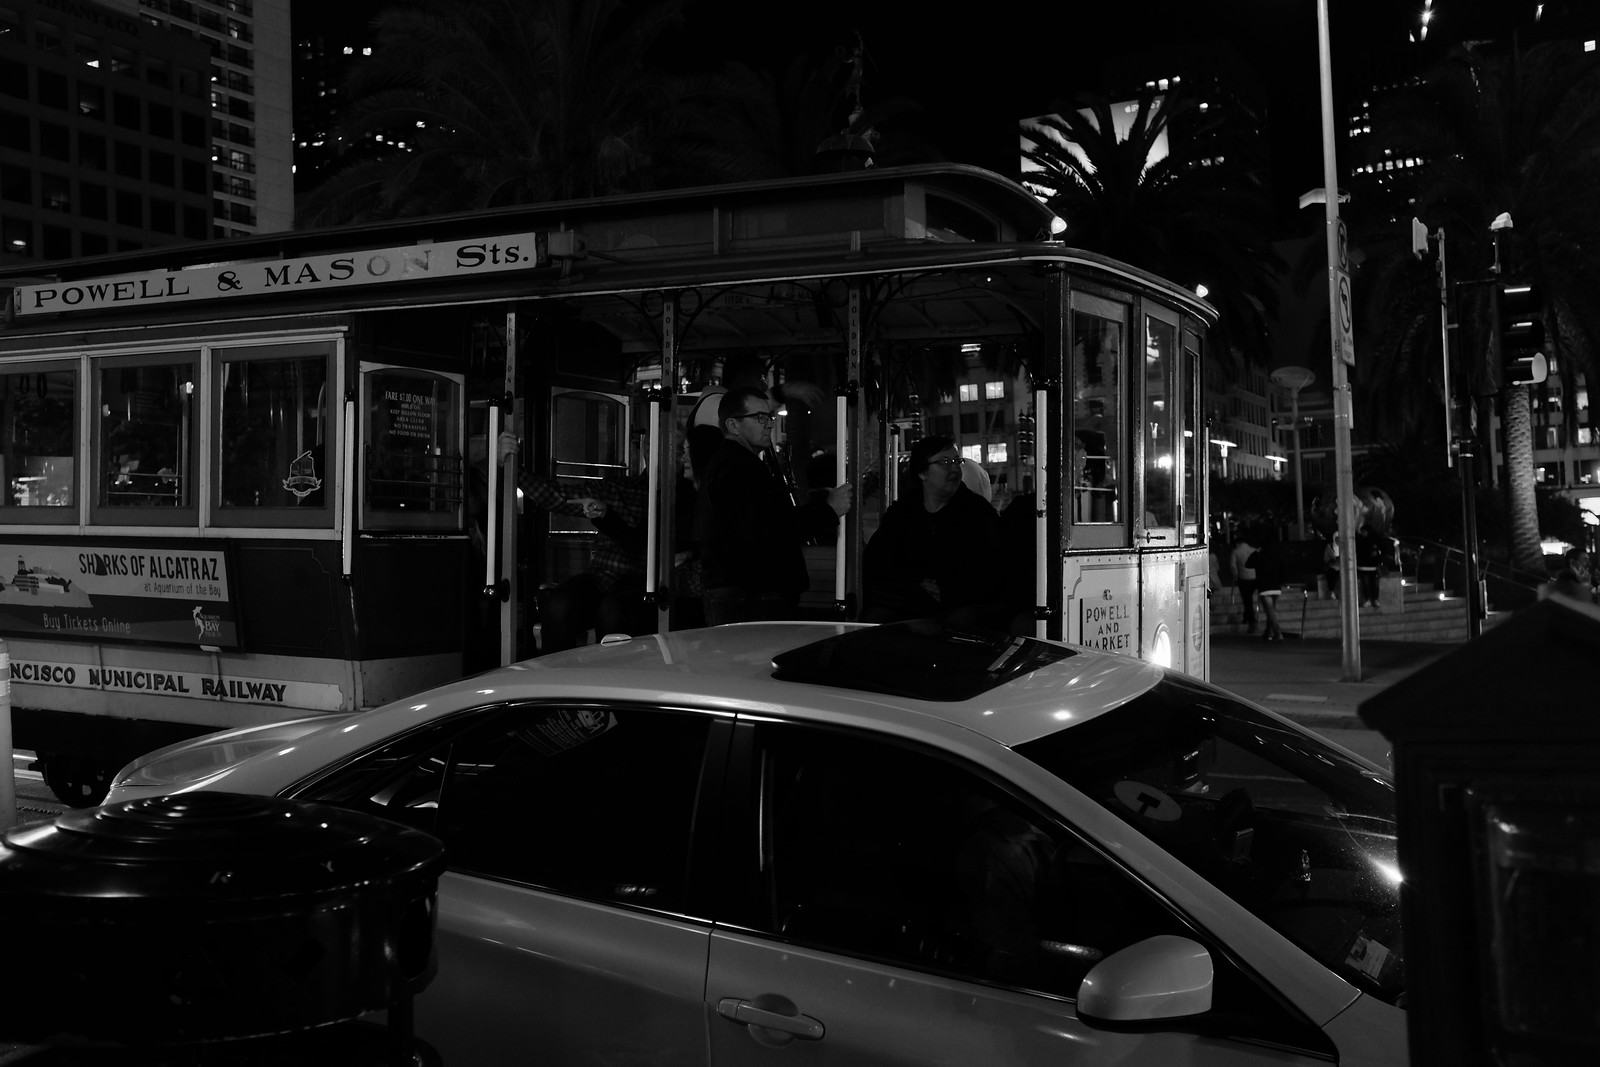 The Sanfrancisco night photo by FUJIFILM X100S.